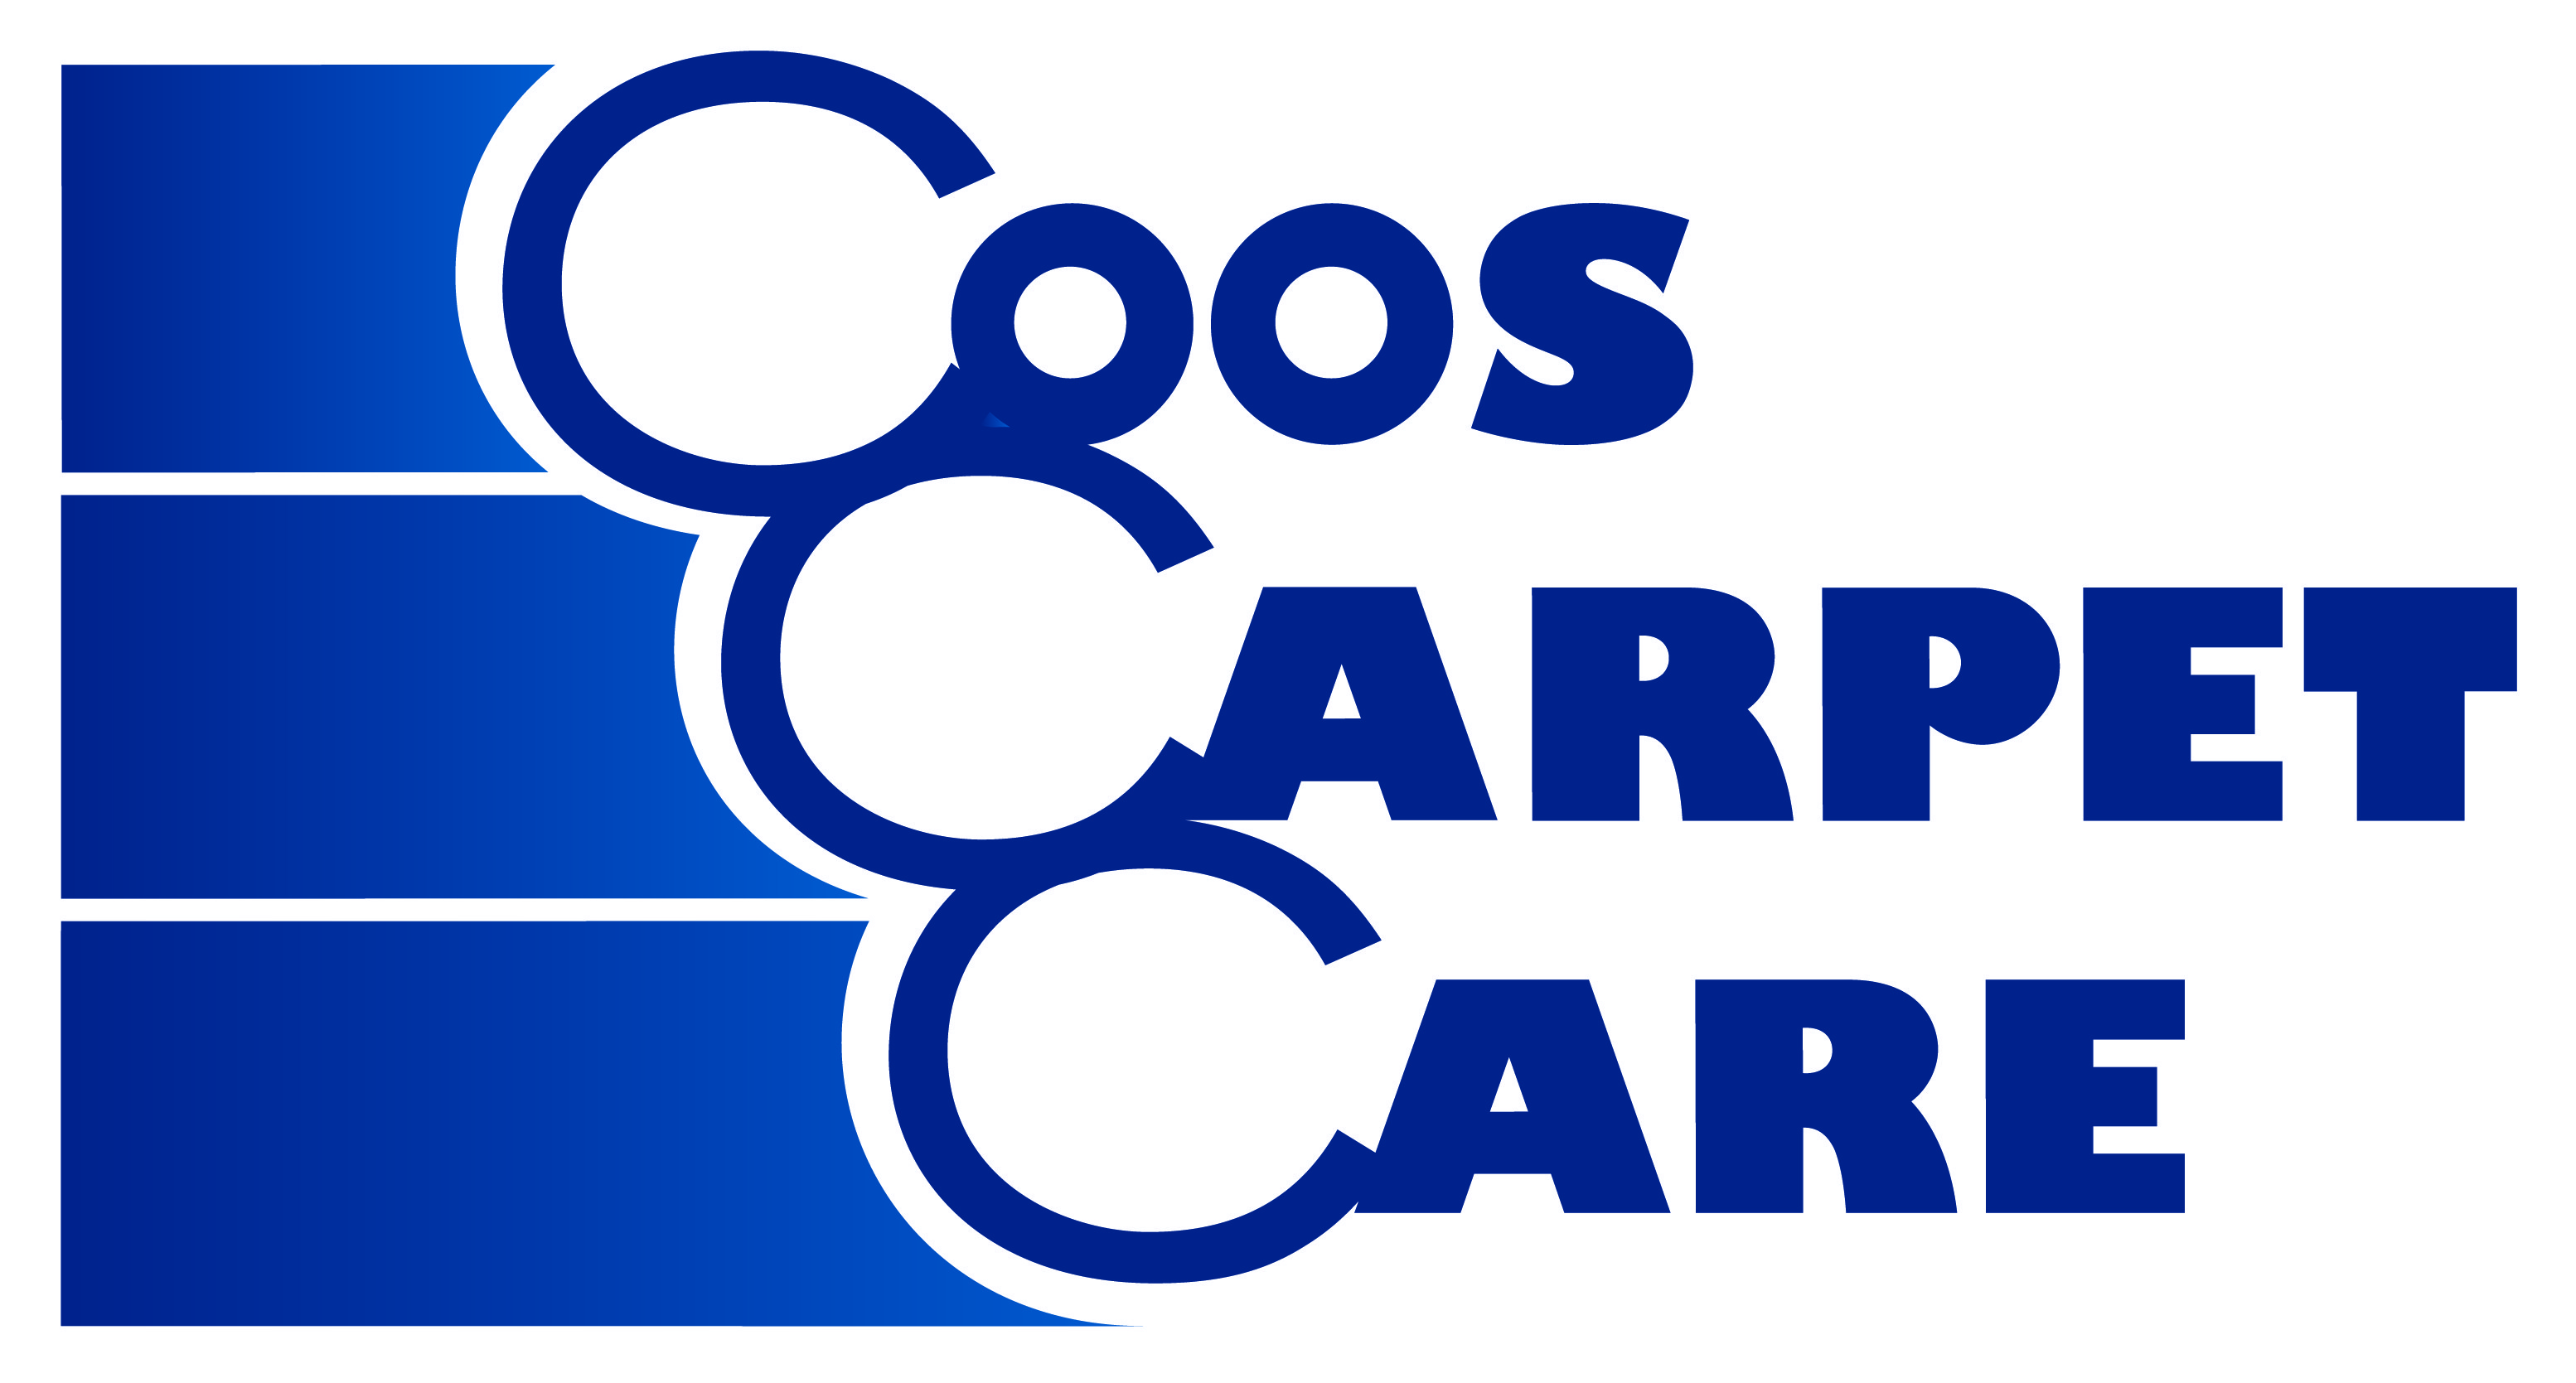 Coos Carpet Care